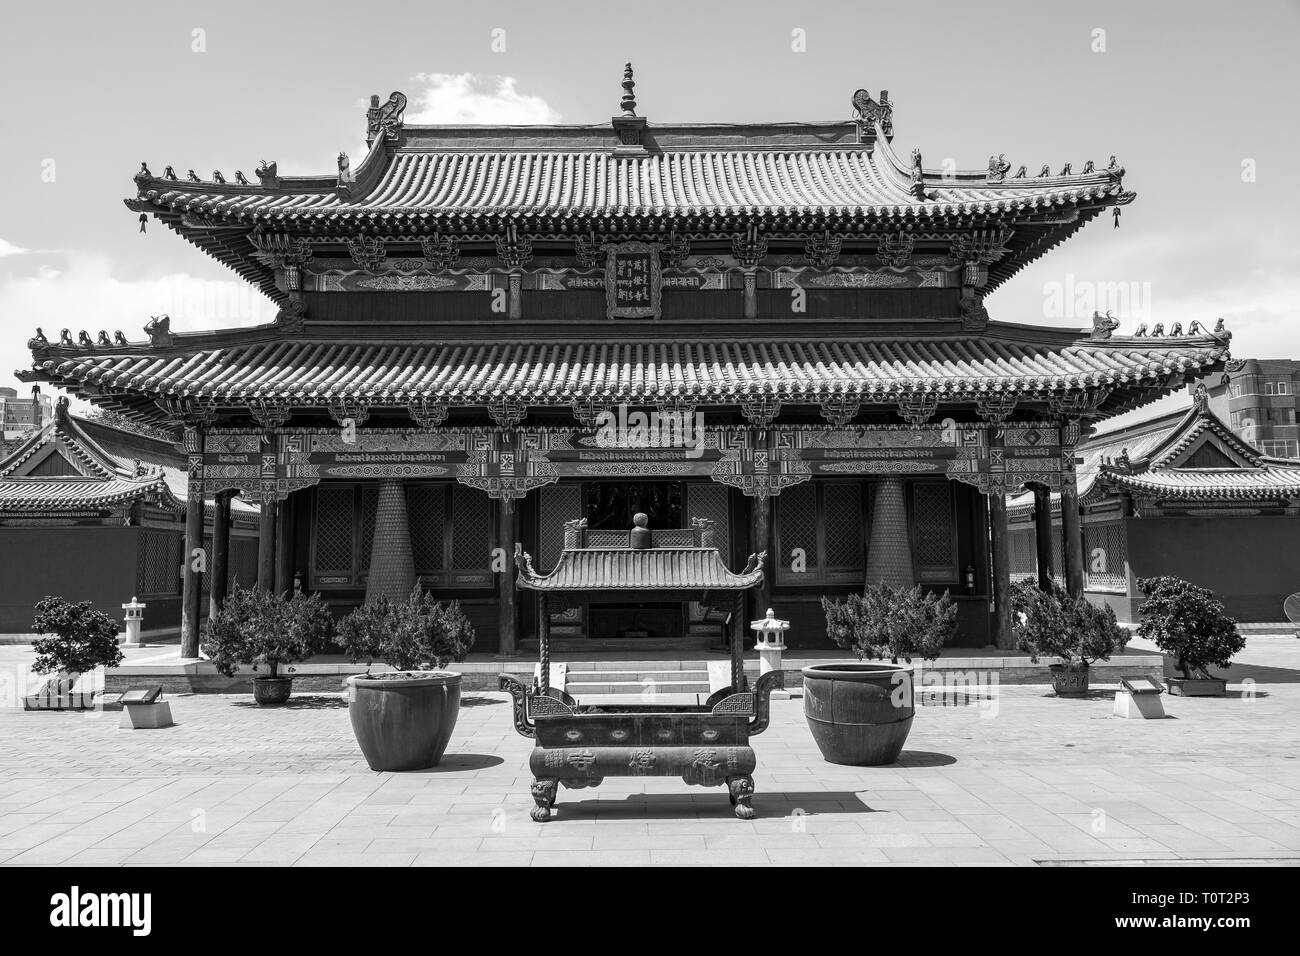 From Five Pagoda temple area in Hohhot, capital of Inner Mongolia, China. - Stock Image